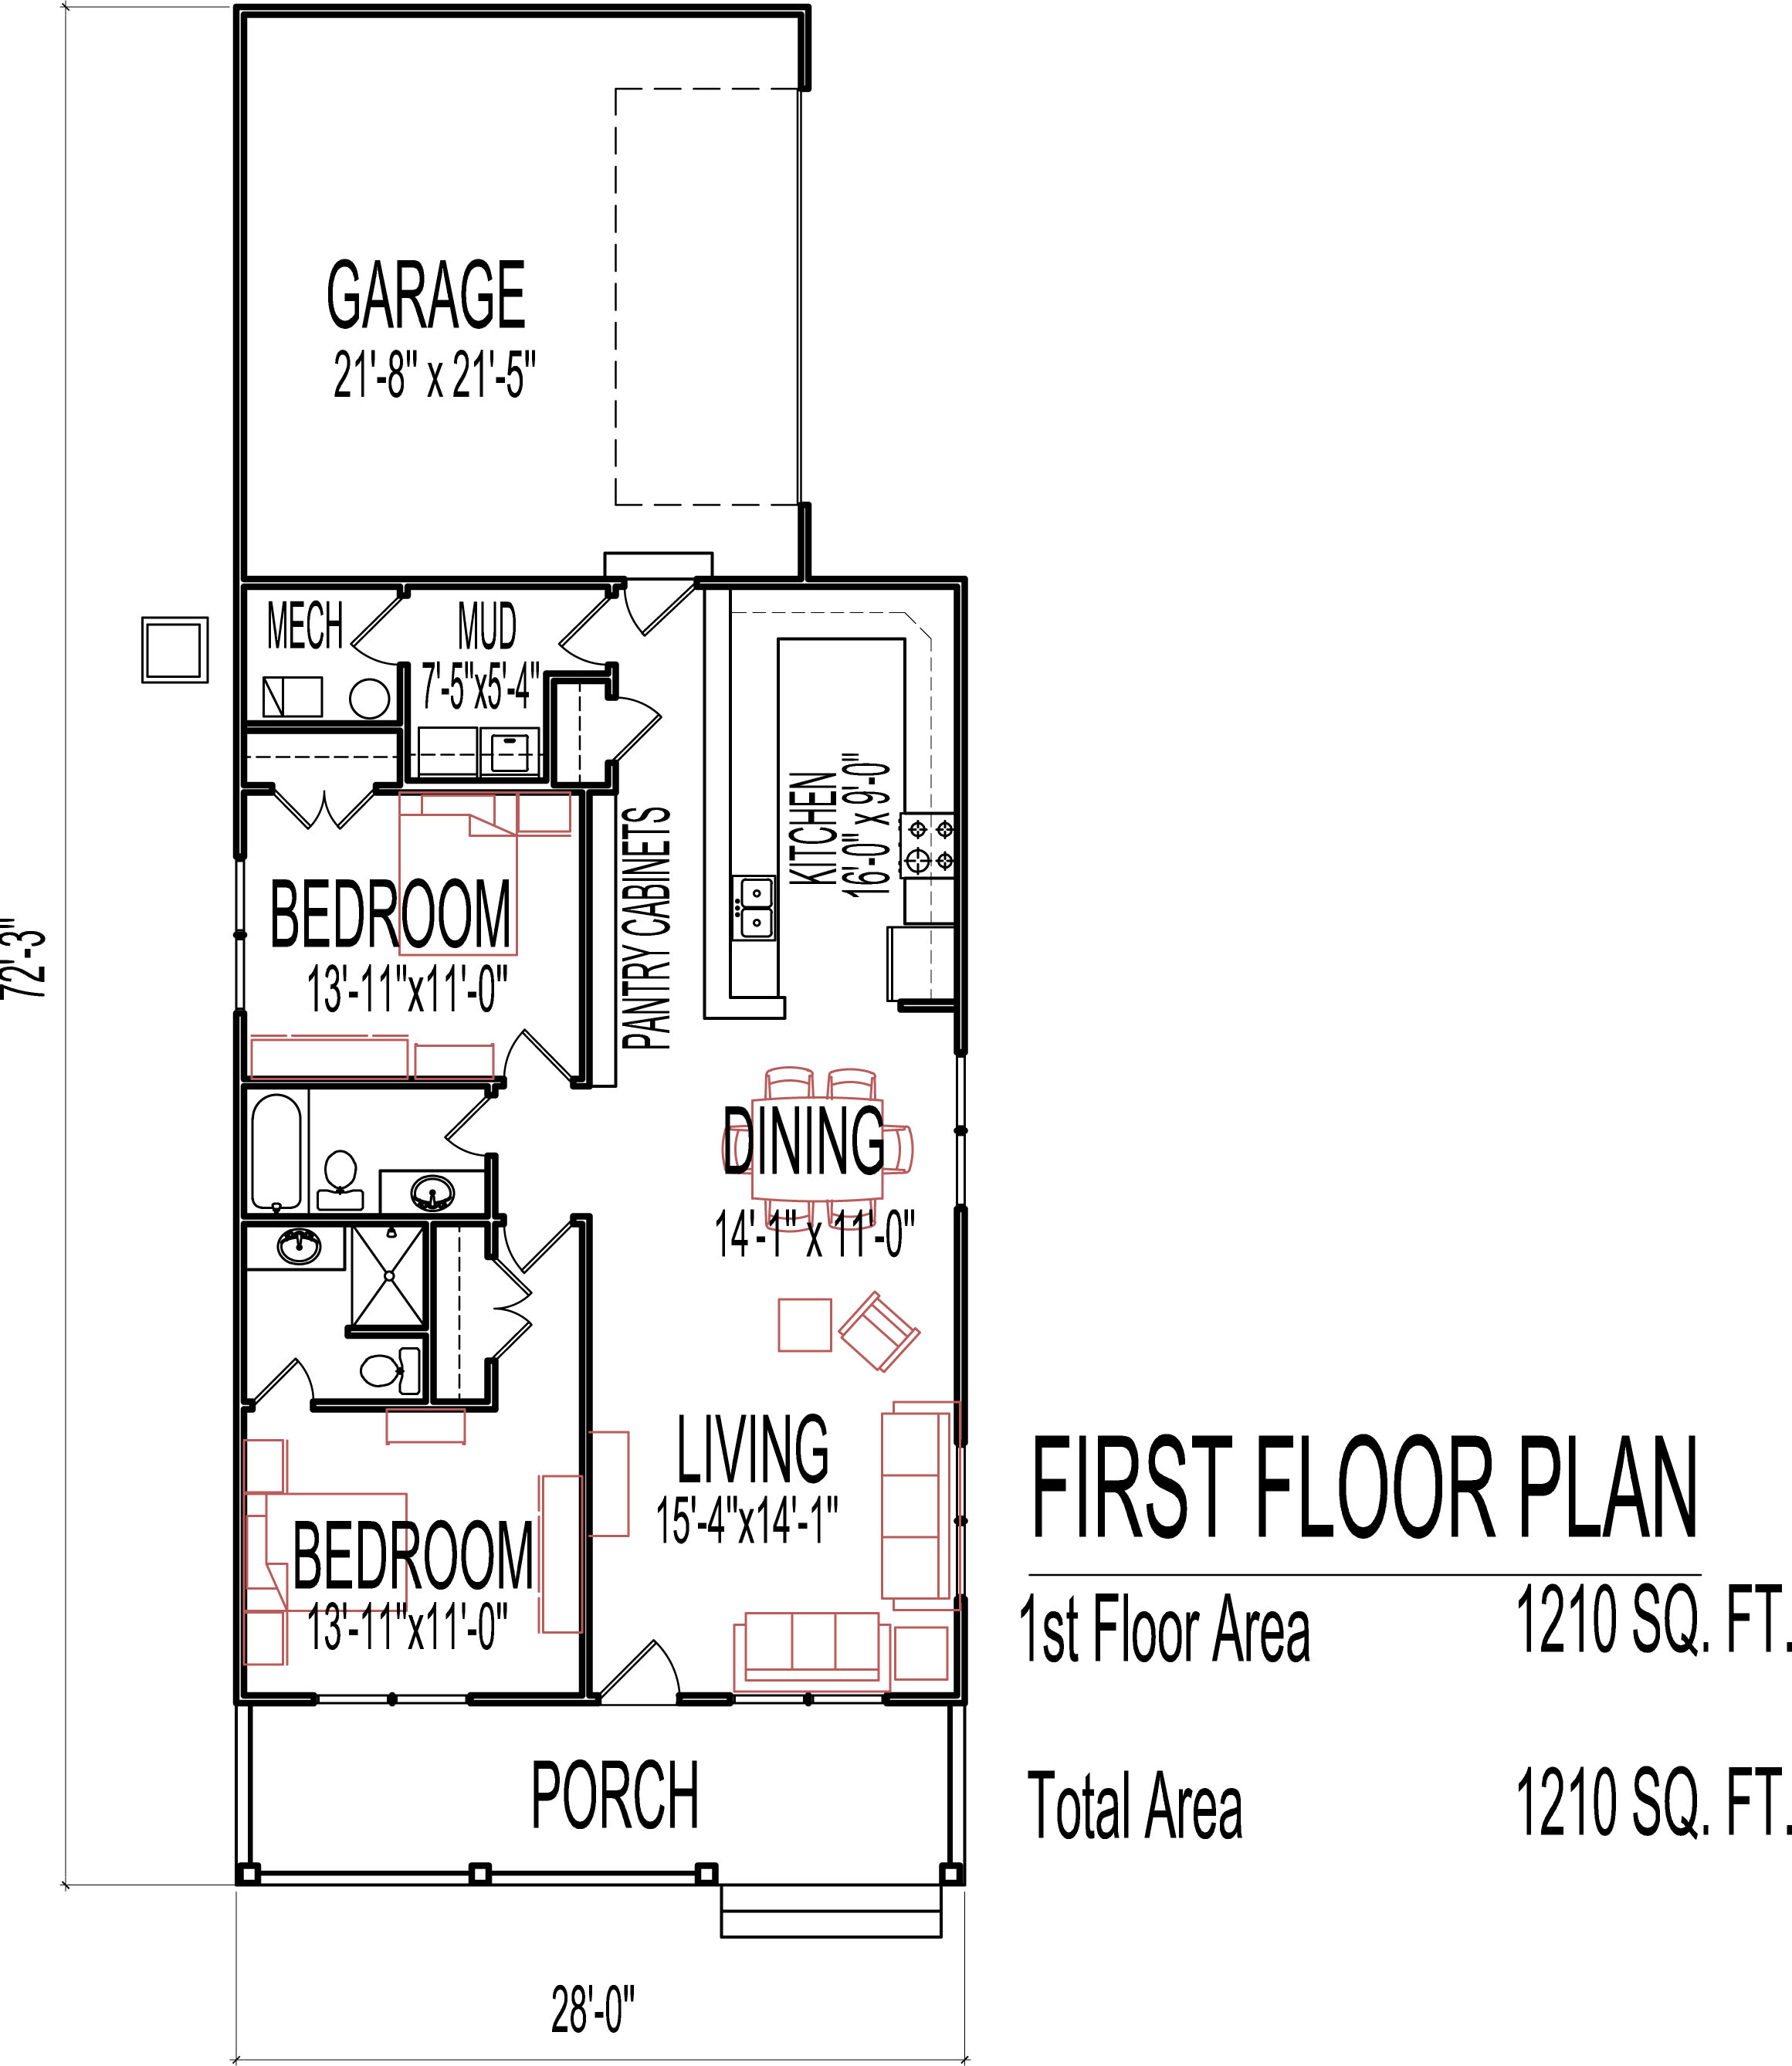 small low cost economical 2 bedroom 2 bath 1200 sq ft single story house floor plans